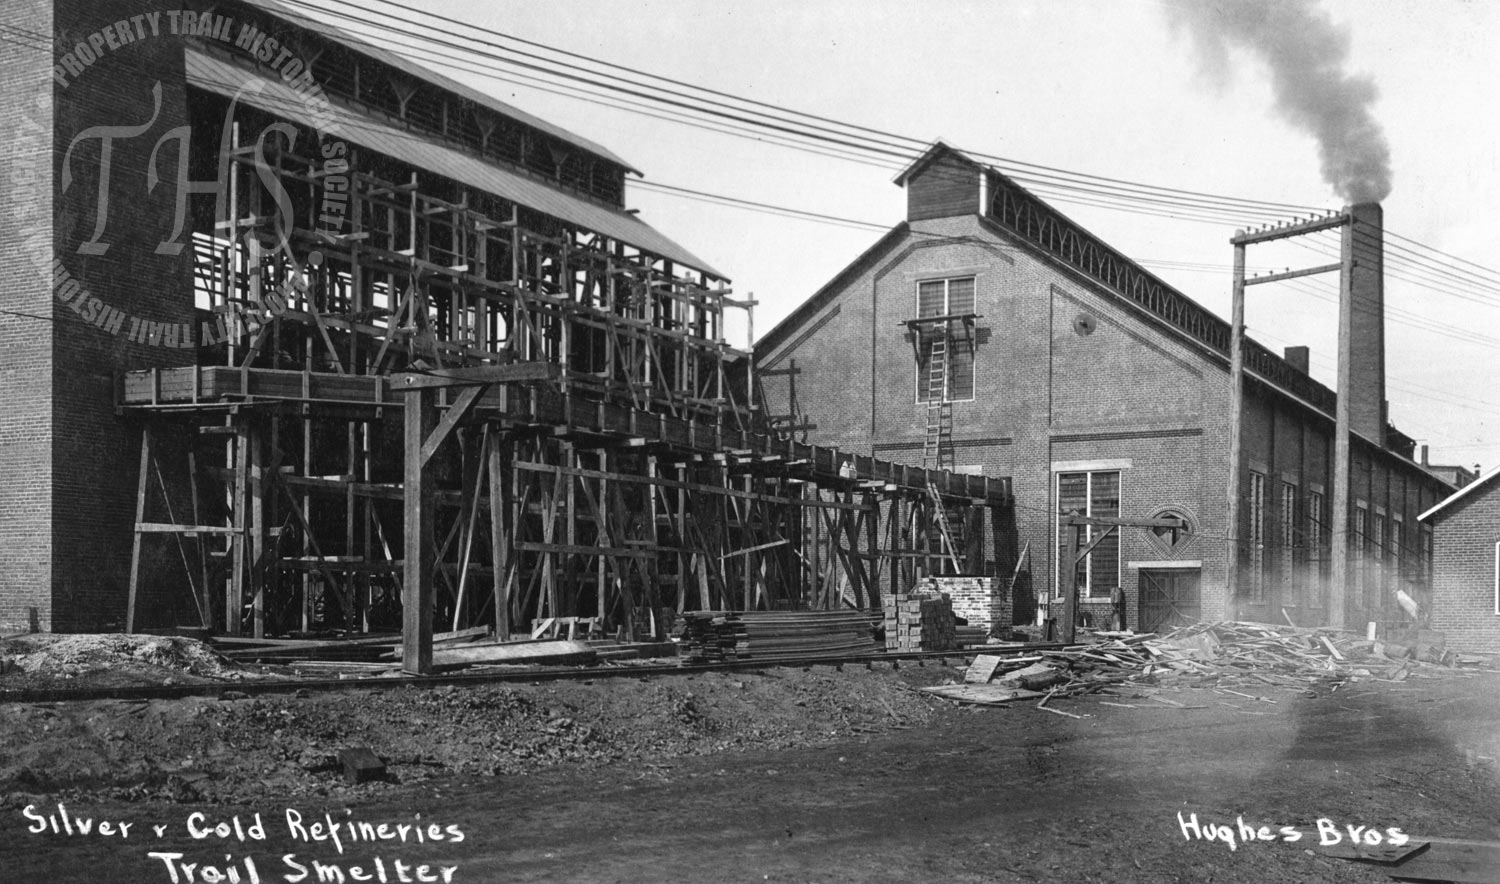 Silver and gold refineries, Trail Smelter (Hughes) - 1928